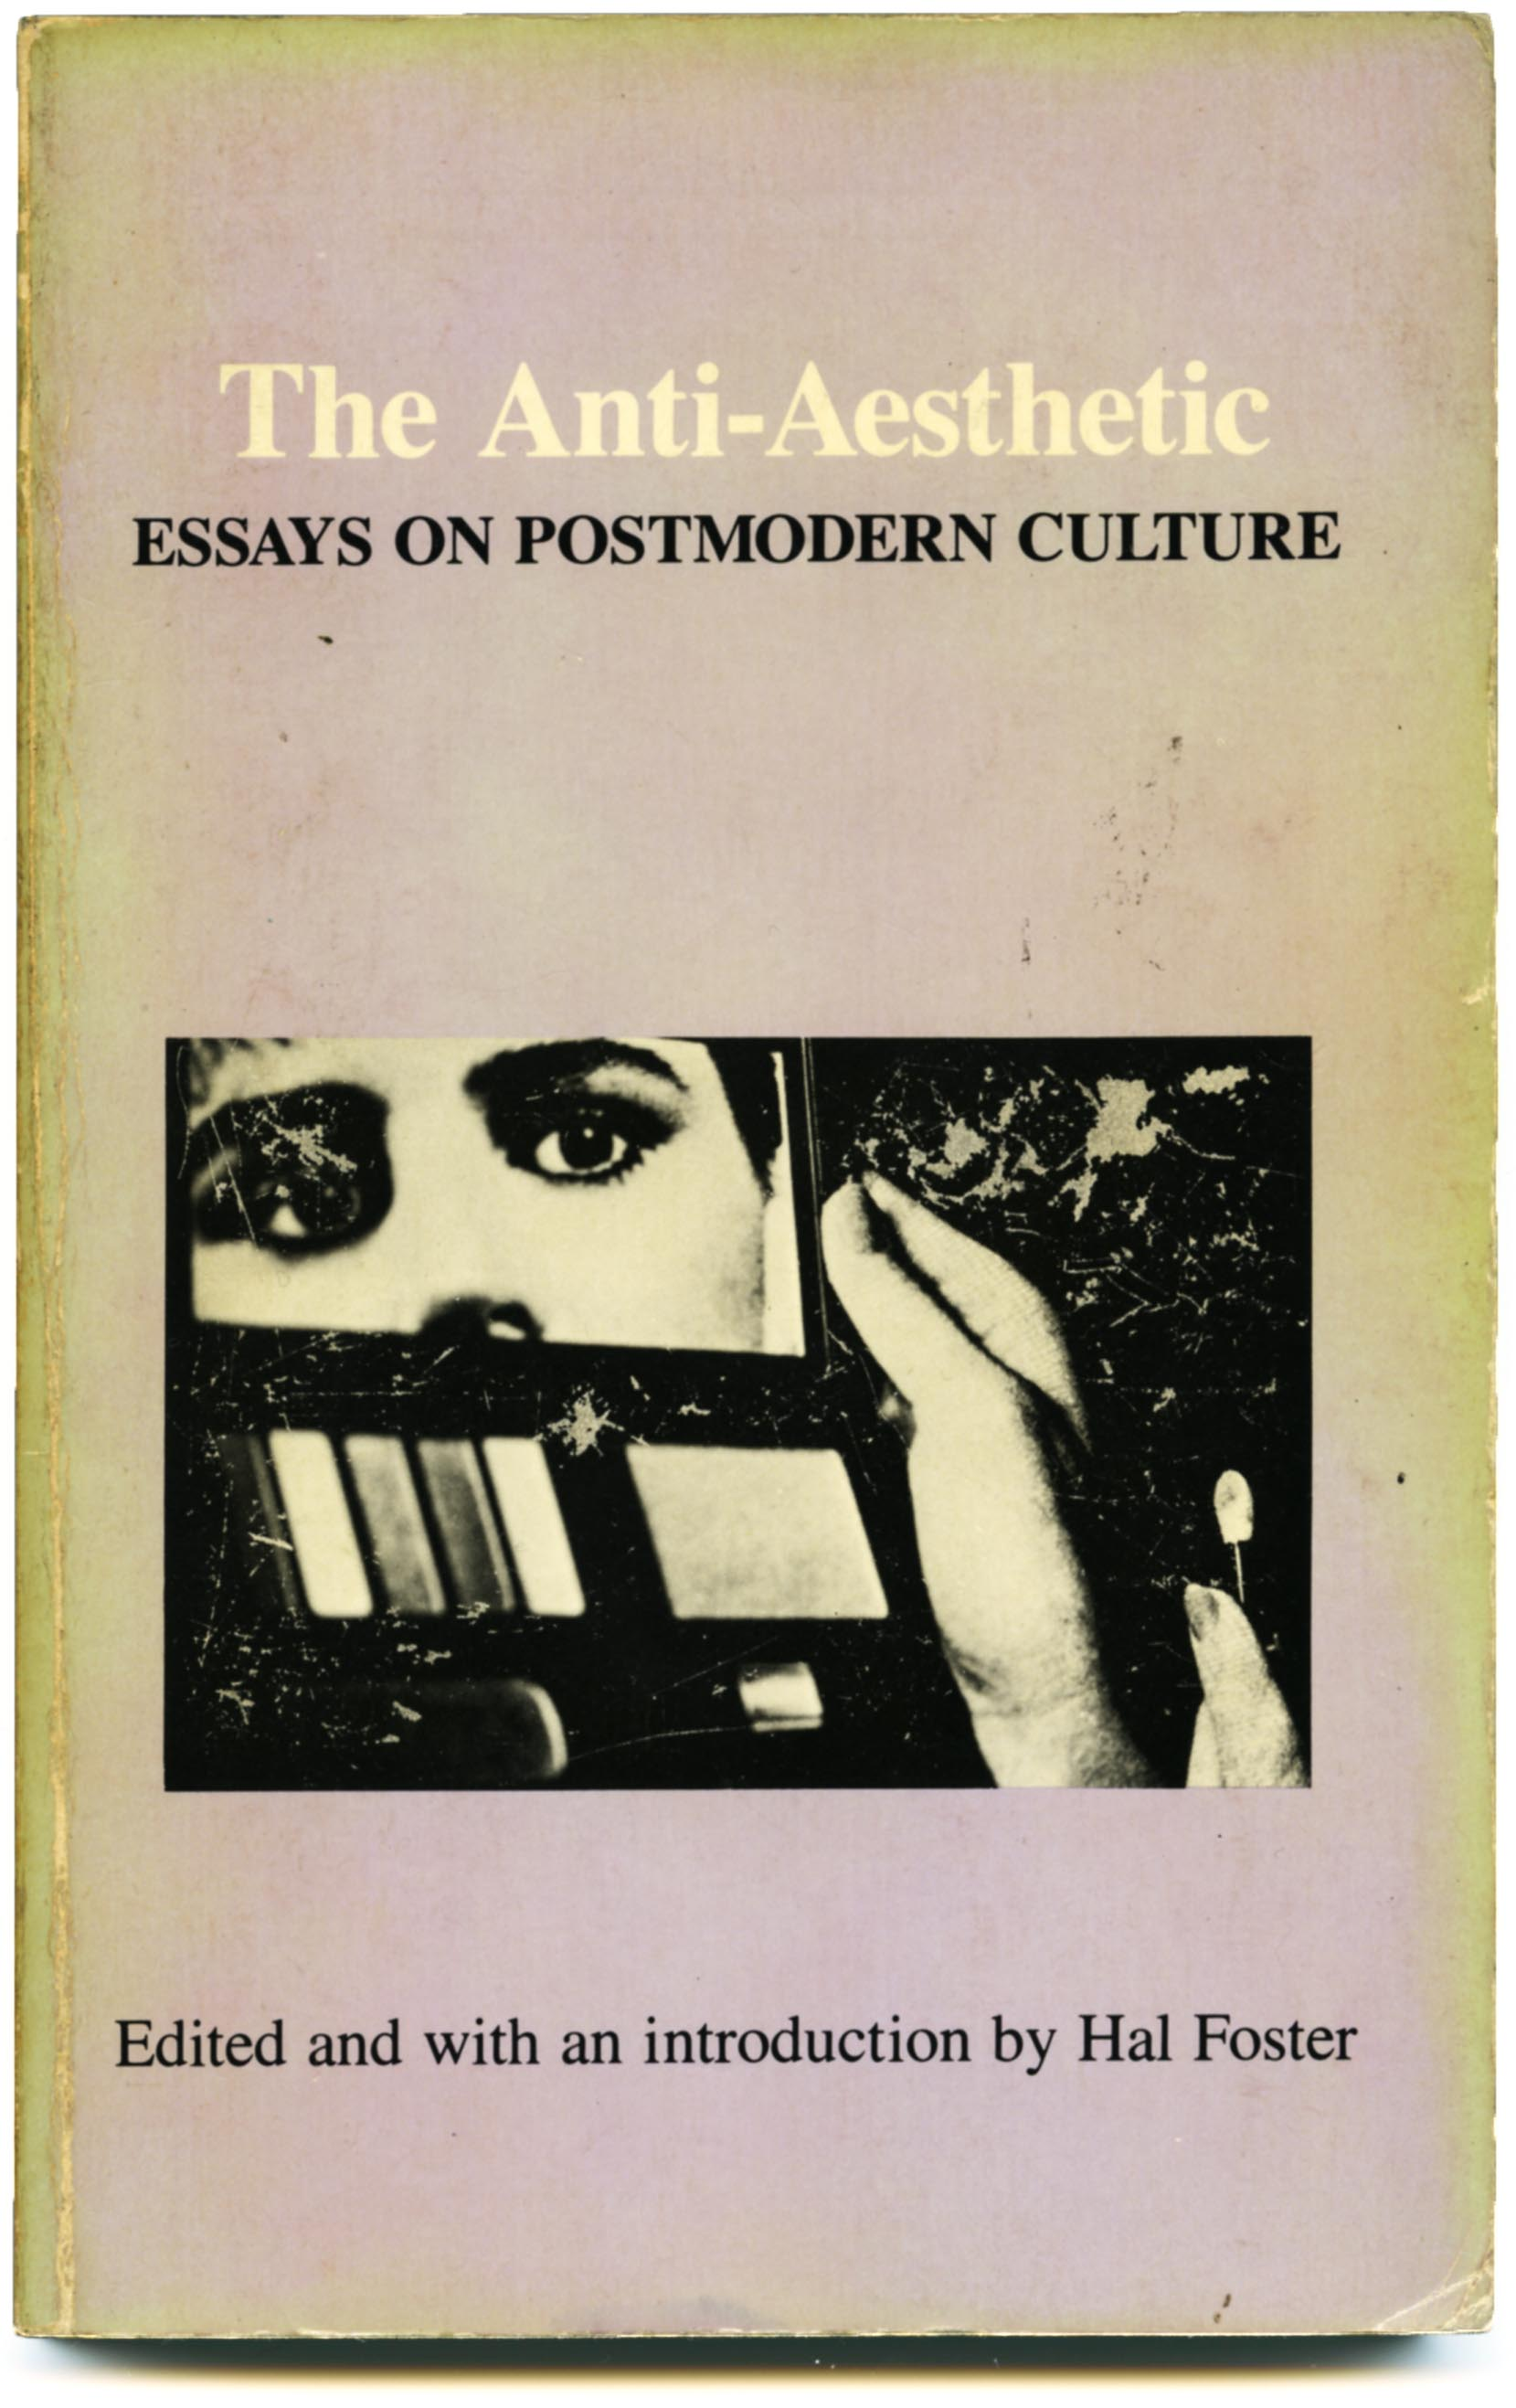 The Anti-Aesthetic: Essays on Postmodern Culture Hal Foster Book Cover